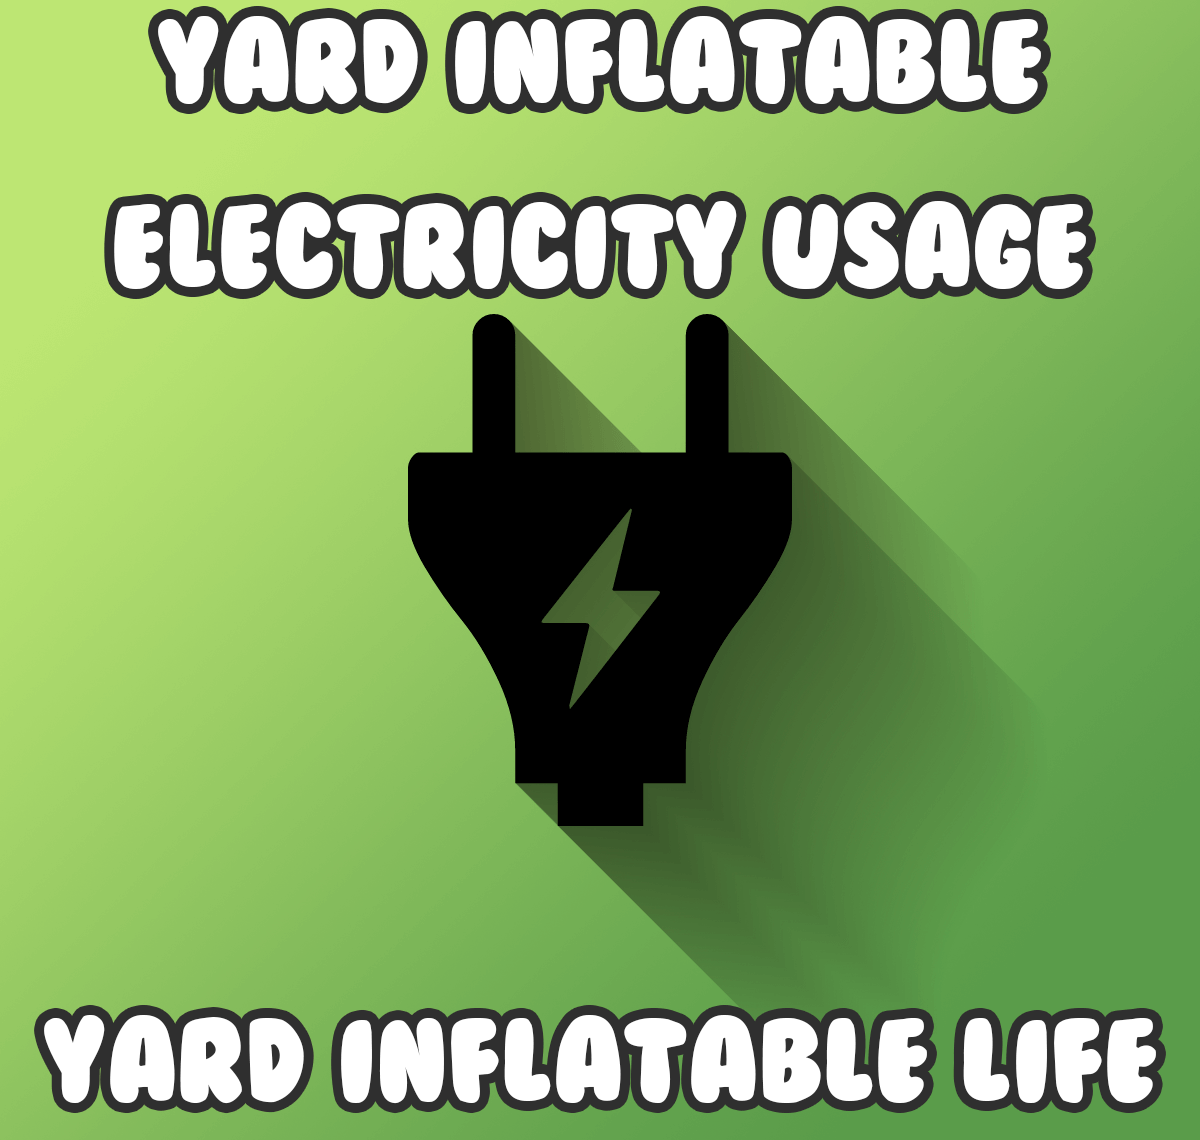 How much electricity does a yard inflatable use? u22c6 Yard Inflatable Life